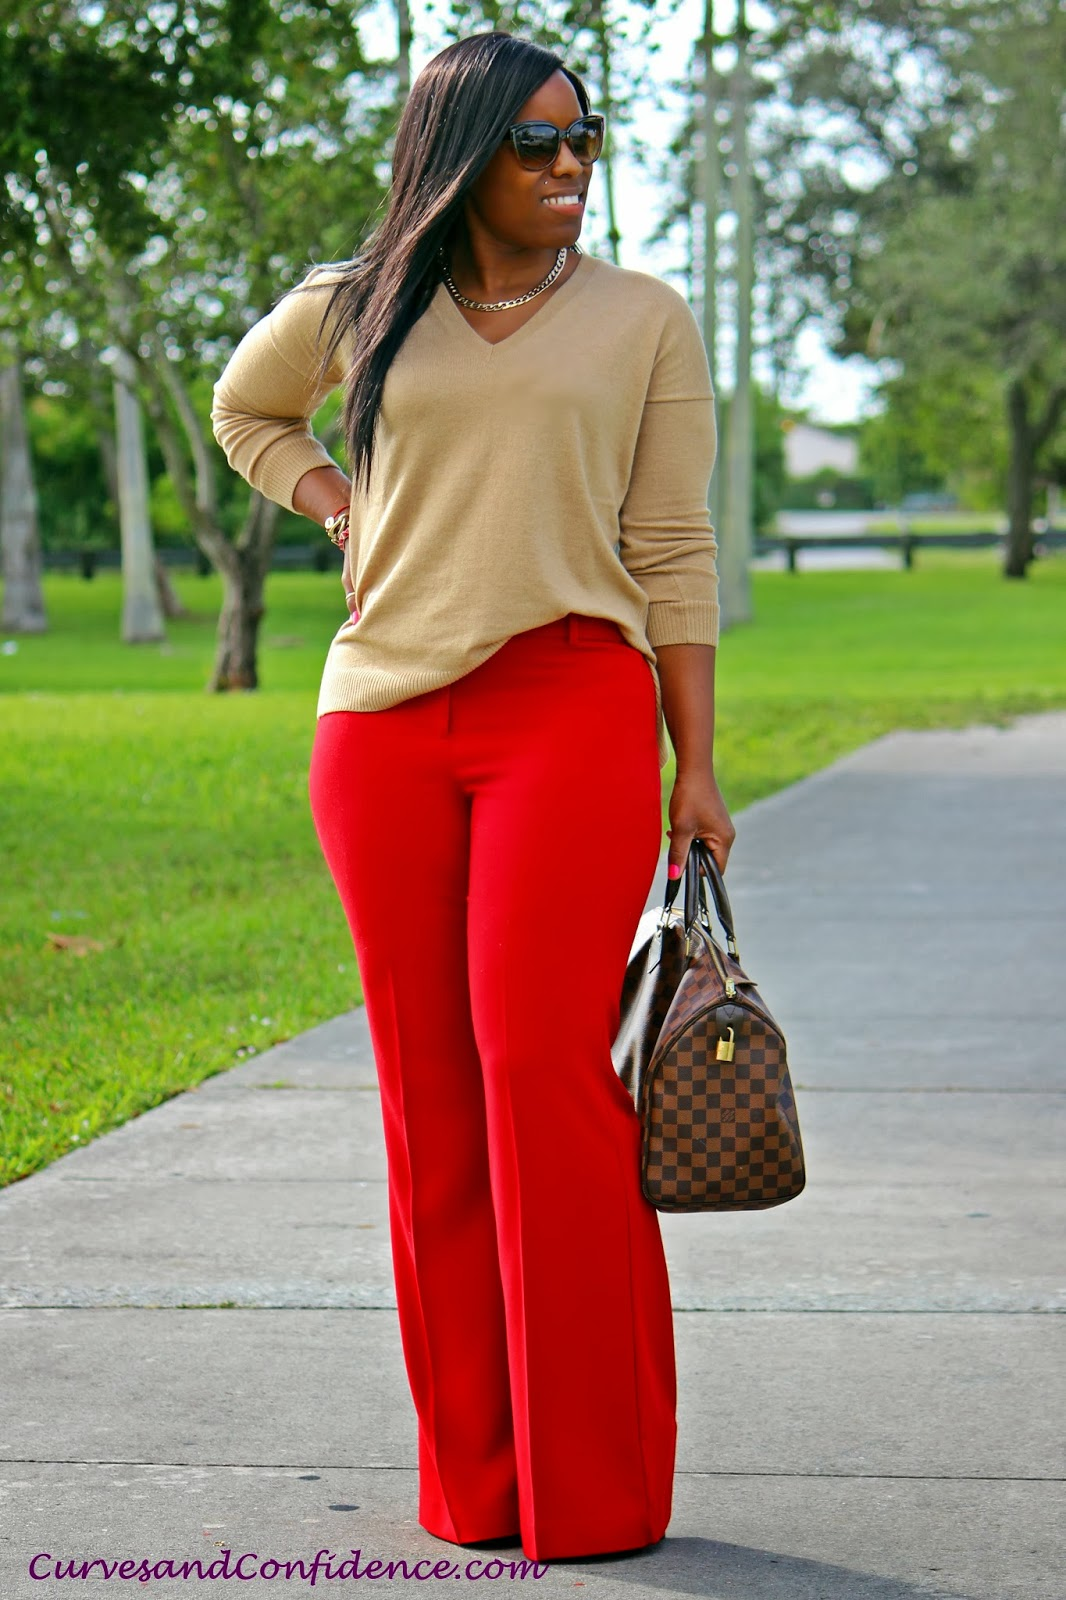 curves+and+confidene%2C+red+and+tan+outfit%2C+red+trousers%2C+tan+ ...